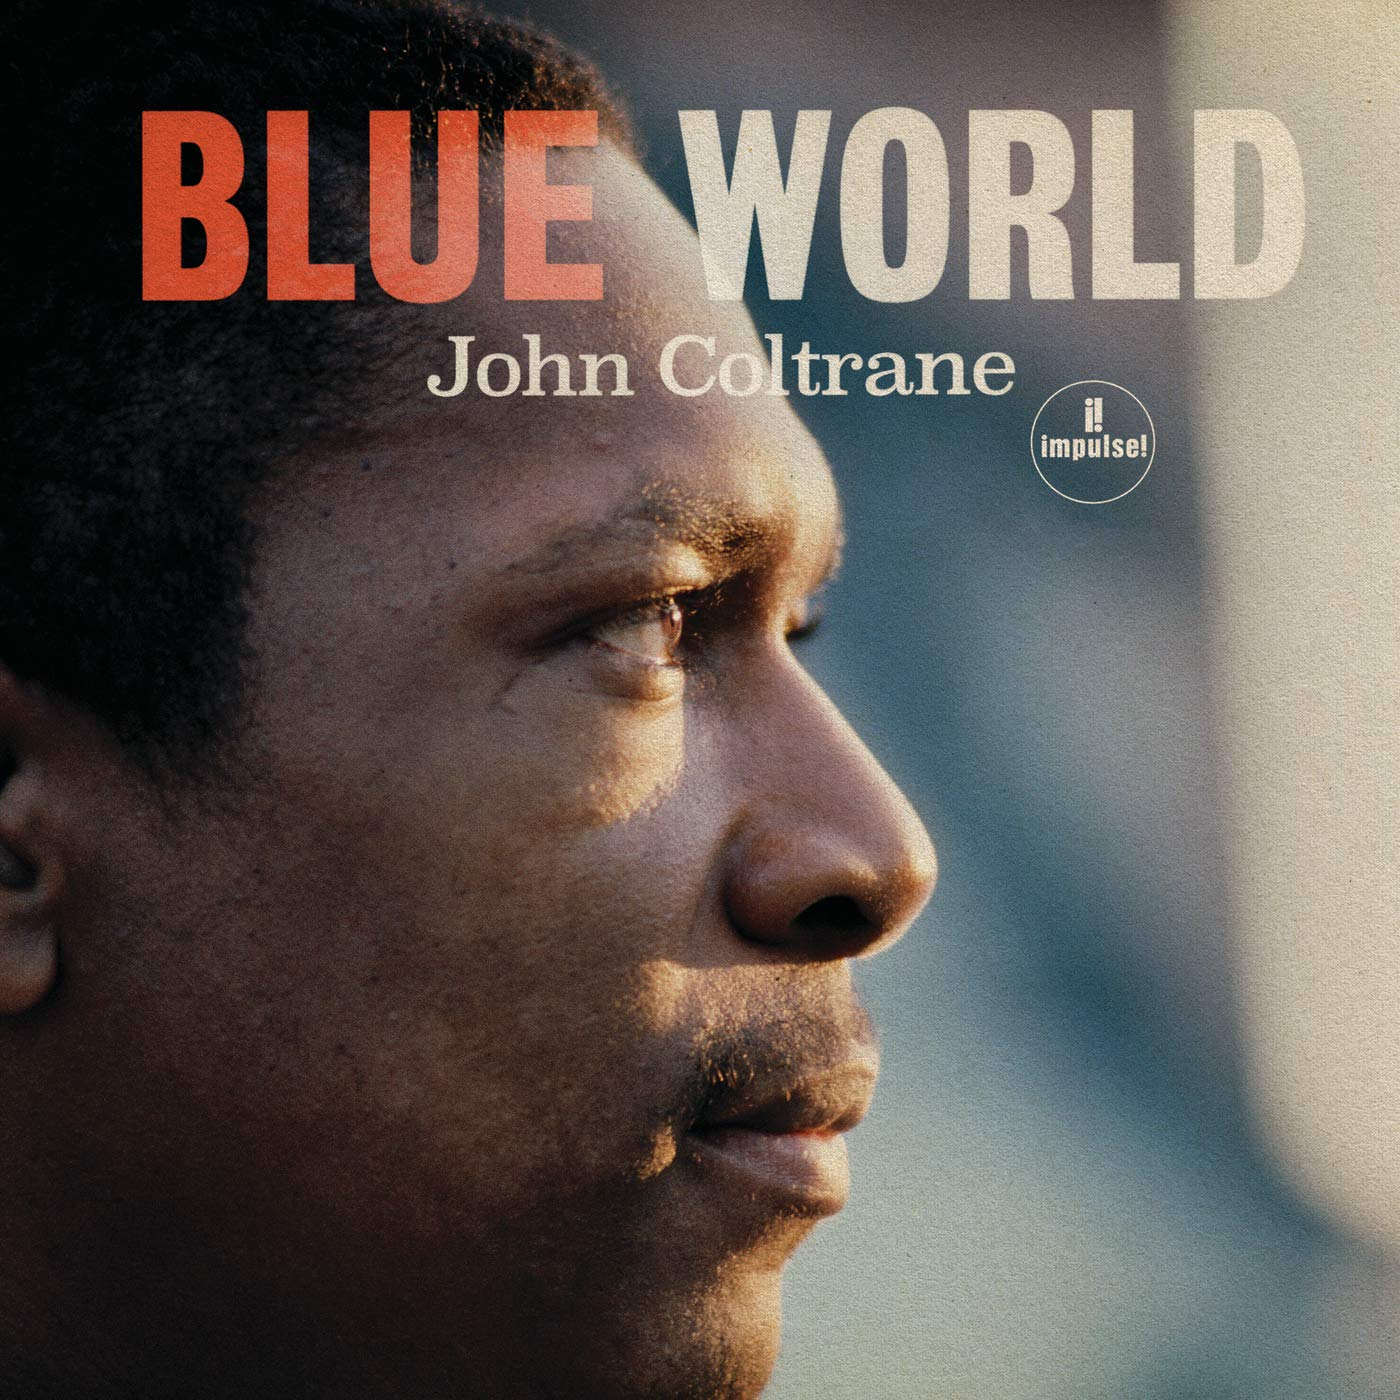 Buy Blue World by John Coltrane New or Used via Amazon